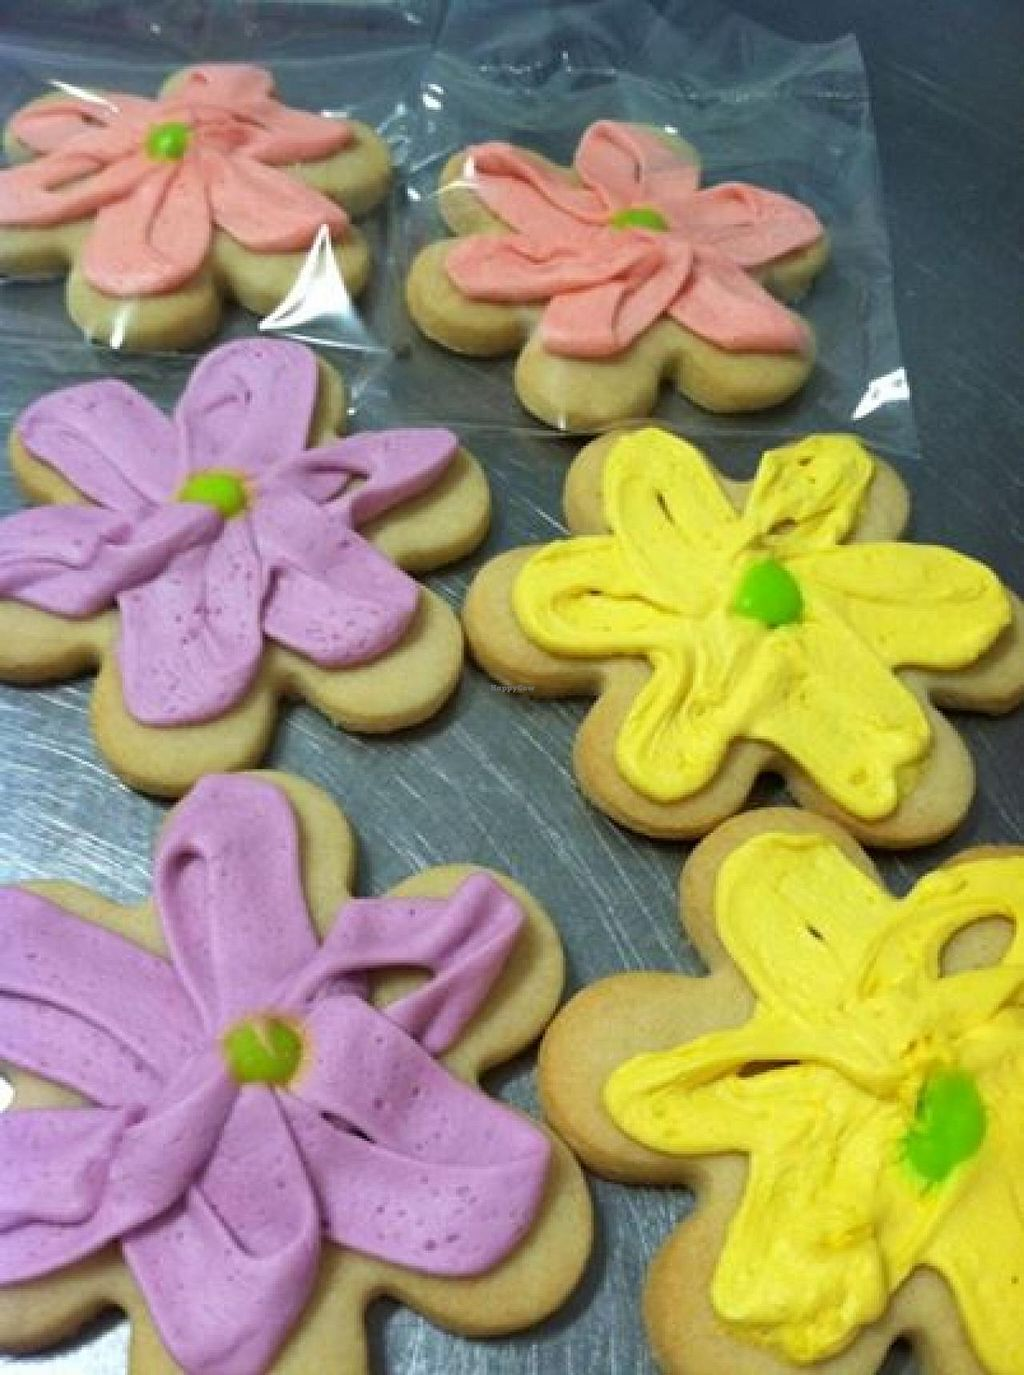 """Photo of CLOSED: Sweet Alexis Bakery  by <a href=""""/members/profile/swtalexisbakery"""">swtalexisbakery</a> <br/>Flower Cookies <br/> August 28, 2014  - <a href='/contact/abuse/image/50803/78499'>Report</a>"""